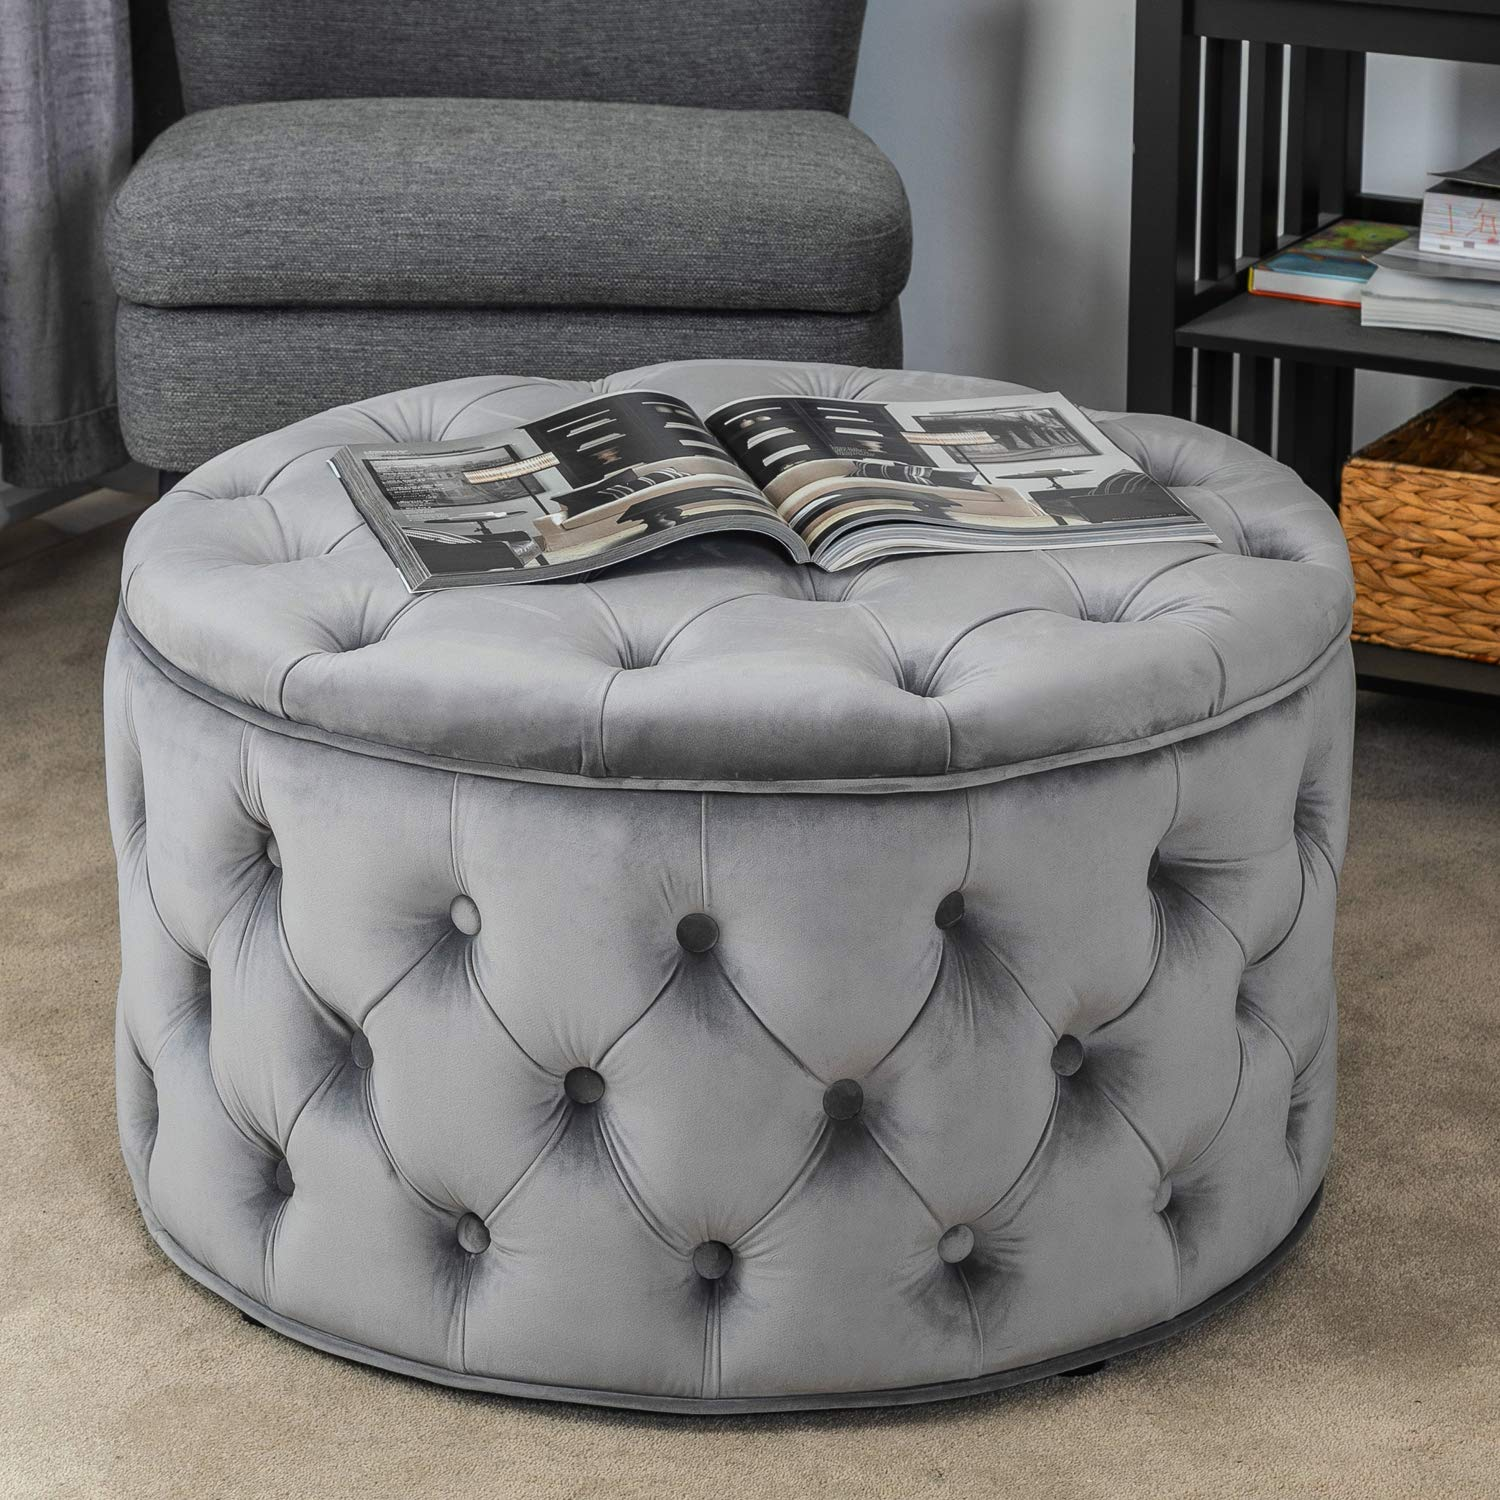 Homebeez Velvet Round Storage Ottoman, Button-Tufted Footrest Stool Bench, Upholstered Coffee Side Table (Grey) by Homebeez